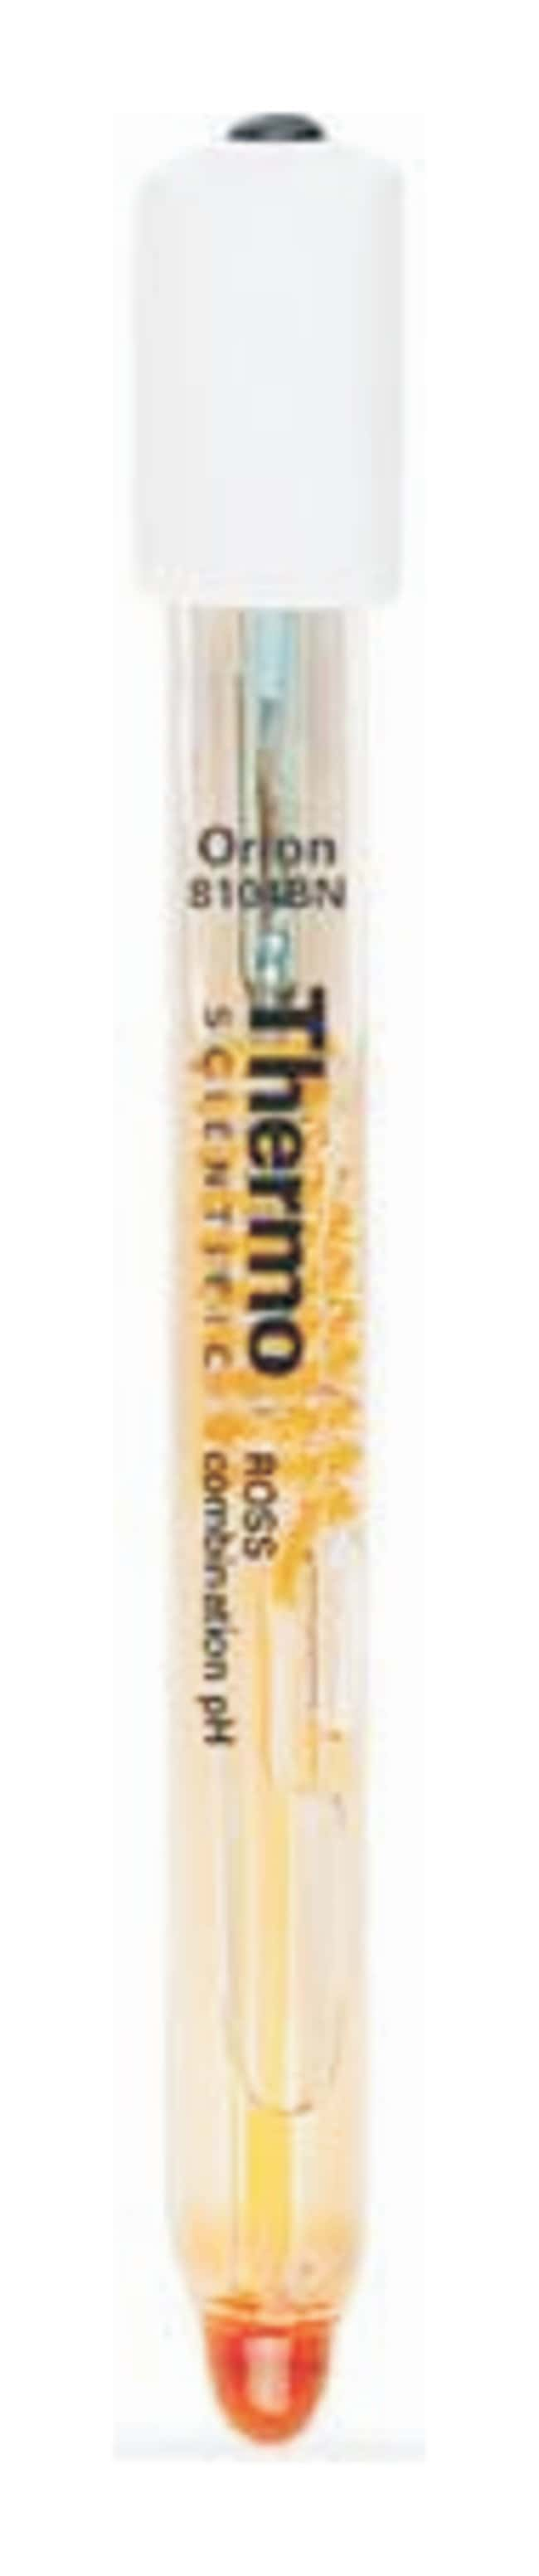 Thermo Scientific™Orion™ 8104BN ROSS™ Combination Rugged Bulb pH Electrode With BNC connector, rugged bulb; 120 x 12mm Thermo Scientific™Orion™ 8104BN ROSS™ Combination Rugged Bulb pH Electrode